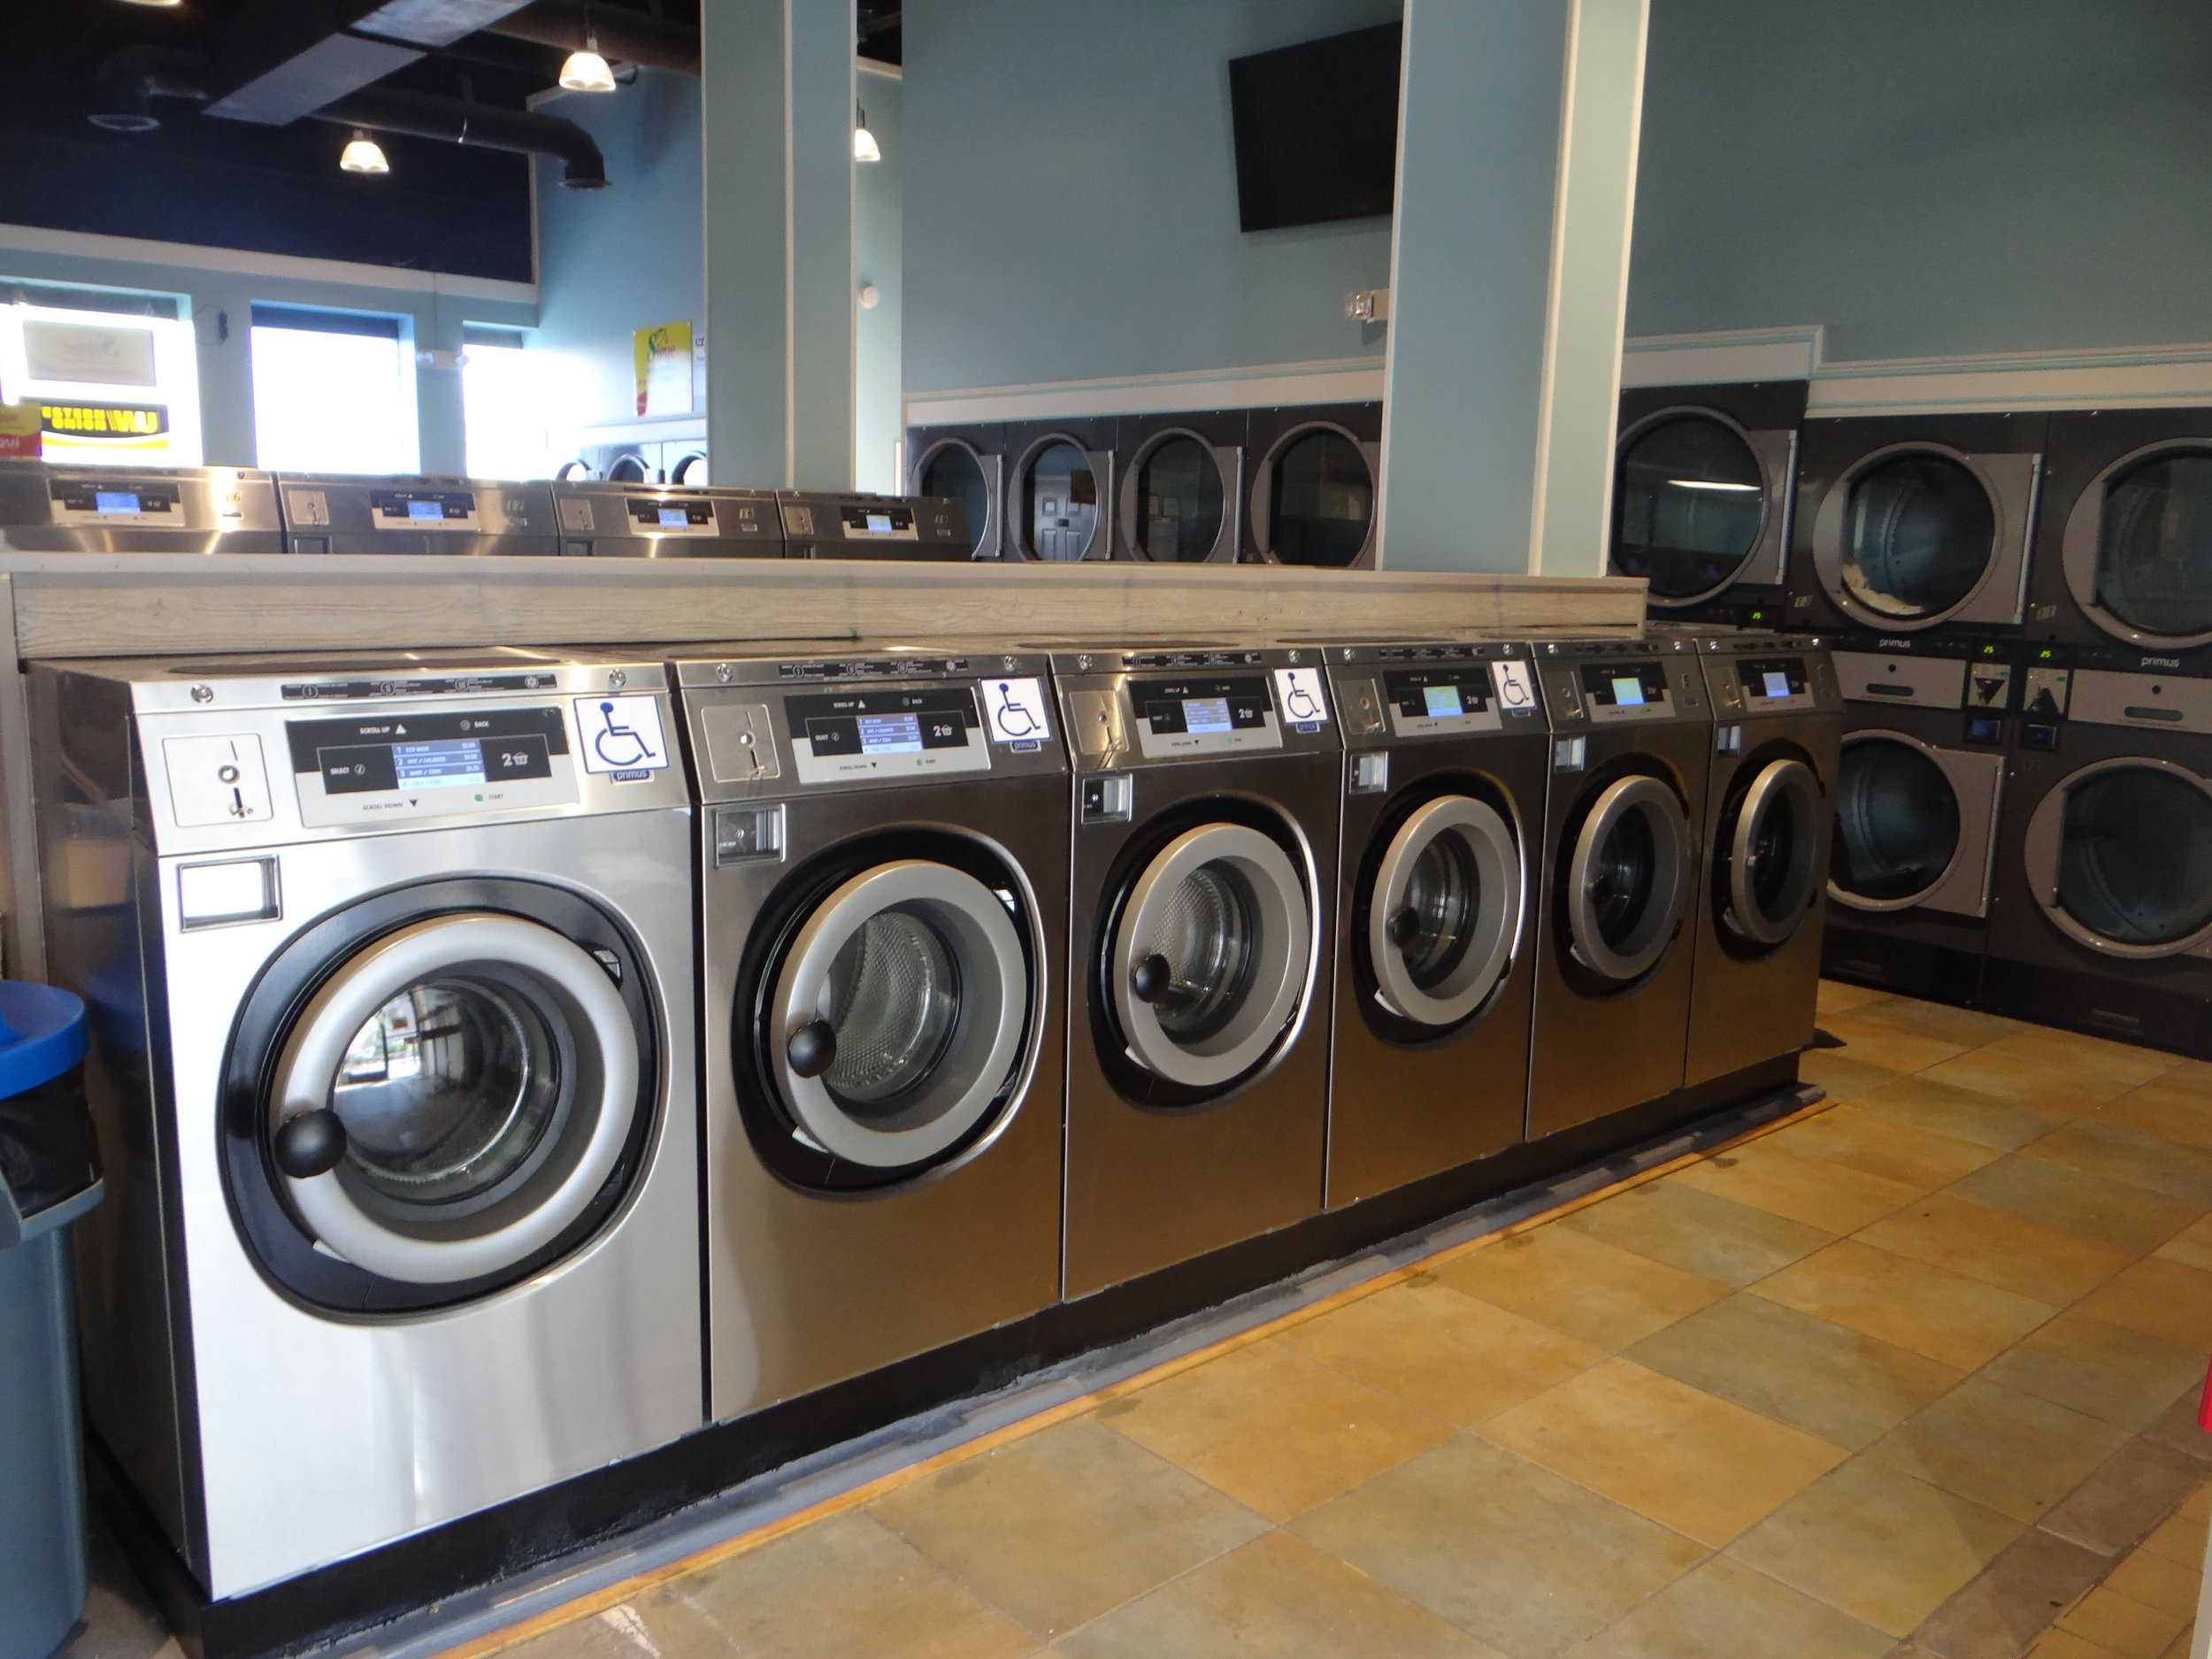 Bernie DiConstantino and George Gautreaux tested Primus laundry equipment in their first Allentown, Pa., store before deciding to open a second that features nothing but Primus equipment (seen here).  (Photos: Equipment Marketers)